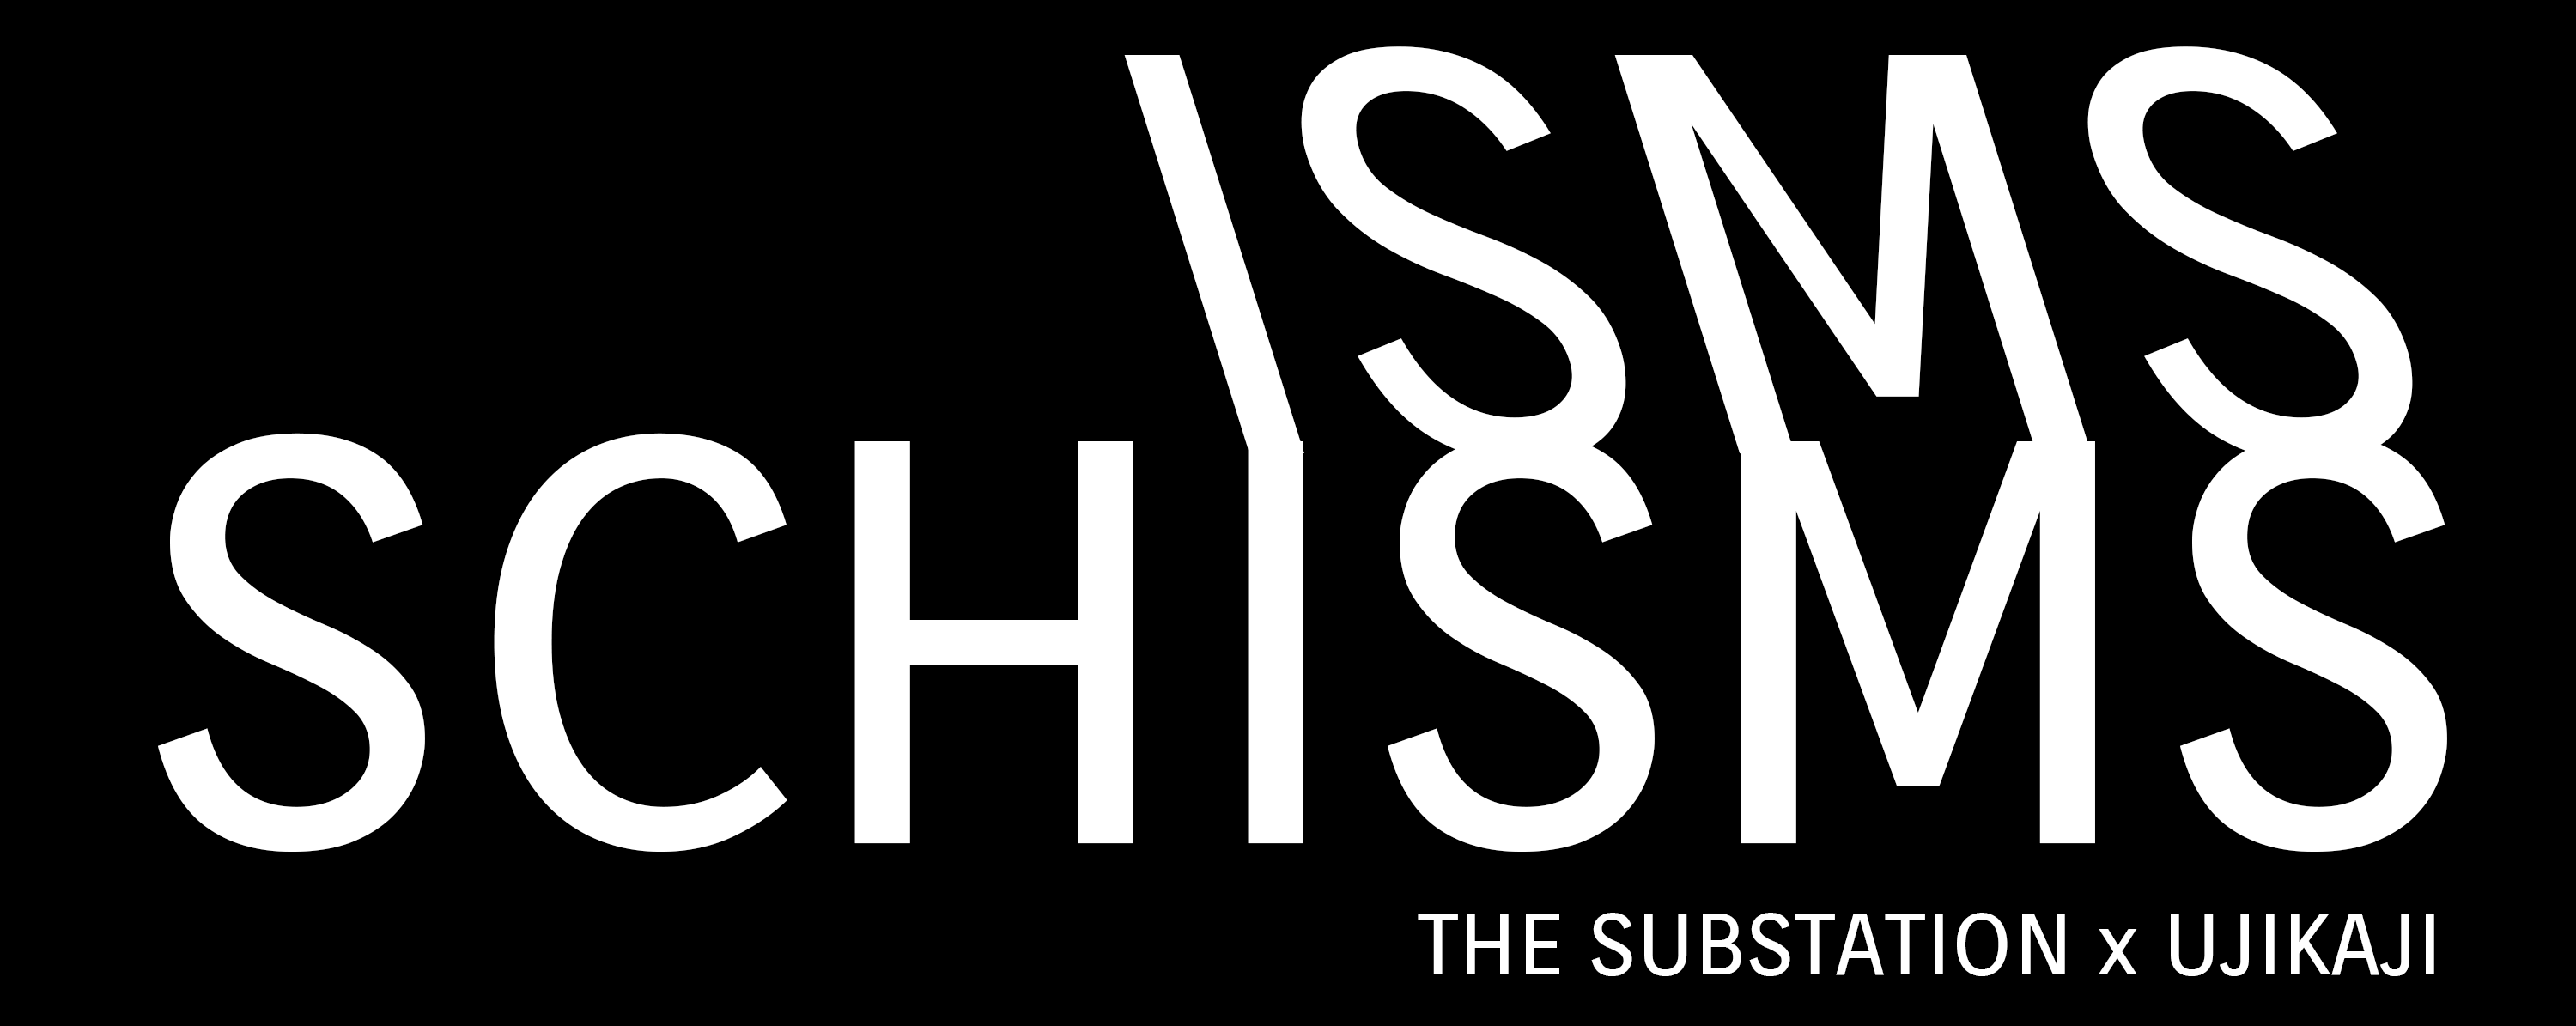 Isms and Schisms (20 & 21 August)